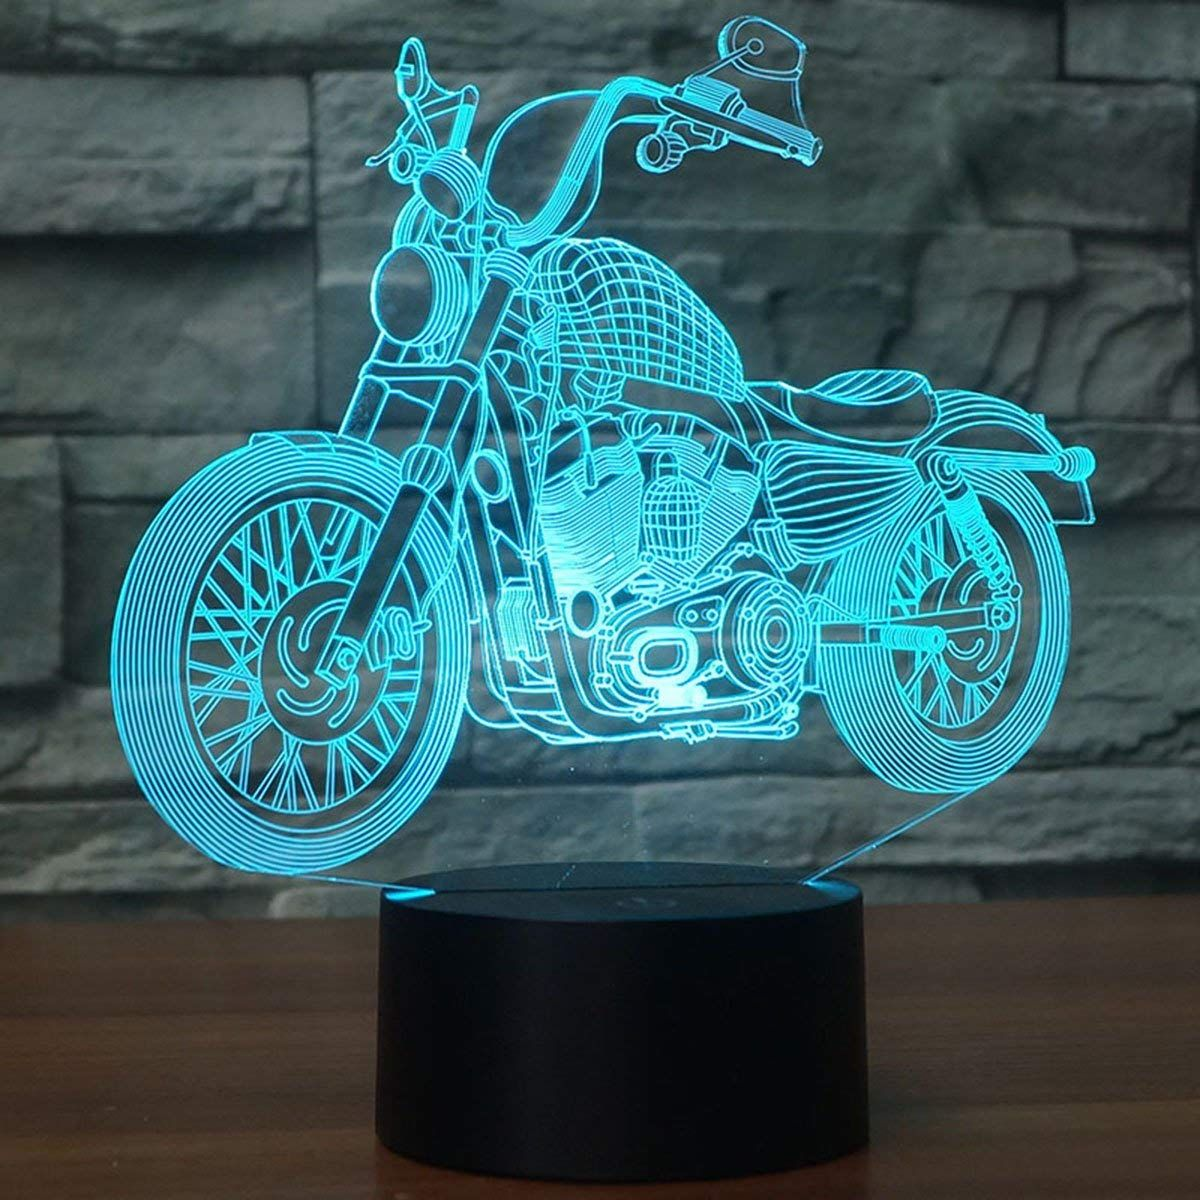 Usb Led 3d Lamp Led Motorcycle Model 3d Sensor Night Light Atmosphere Lamp As Bedroom Decoration Amazon Com Sensor Night Lights 3d Lamp Lamp